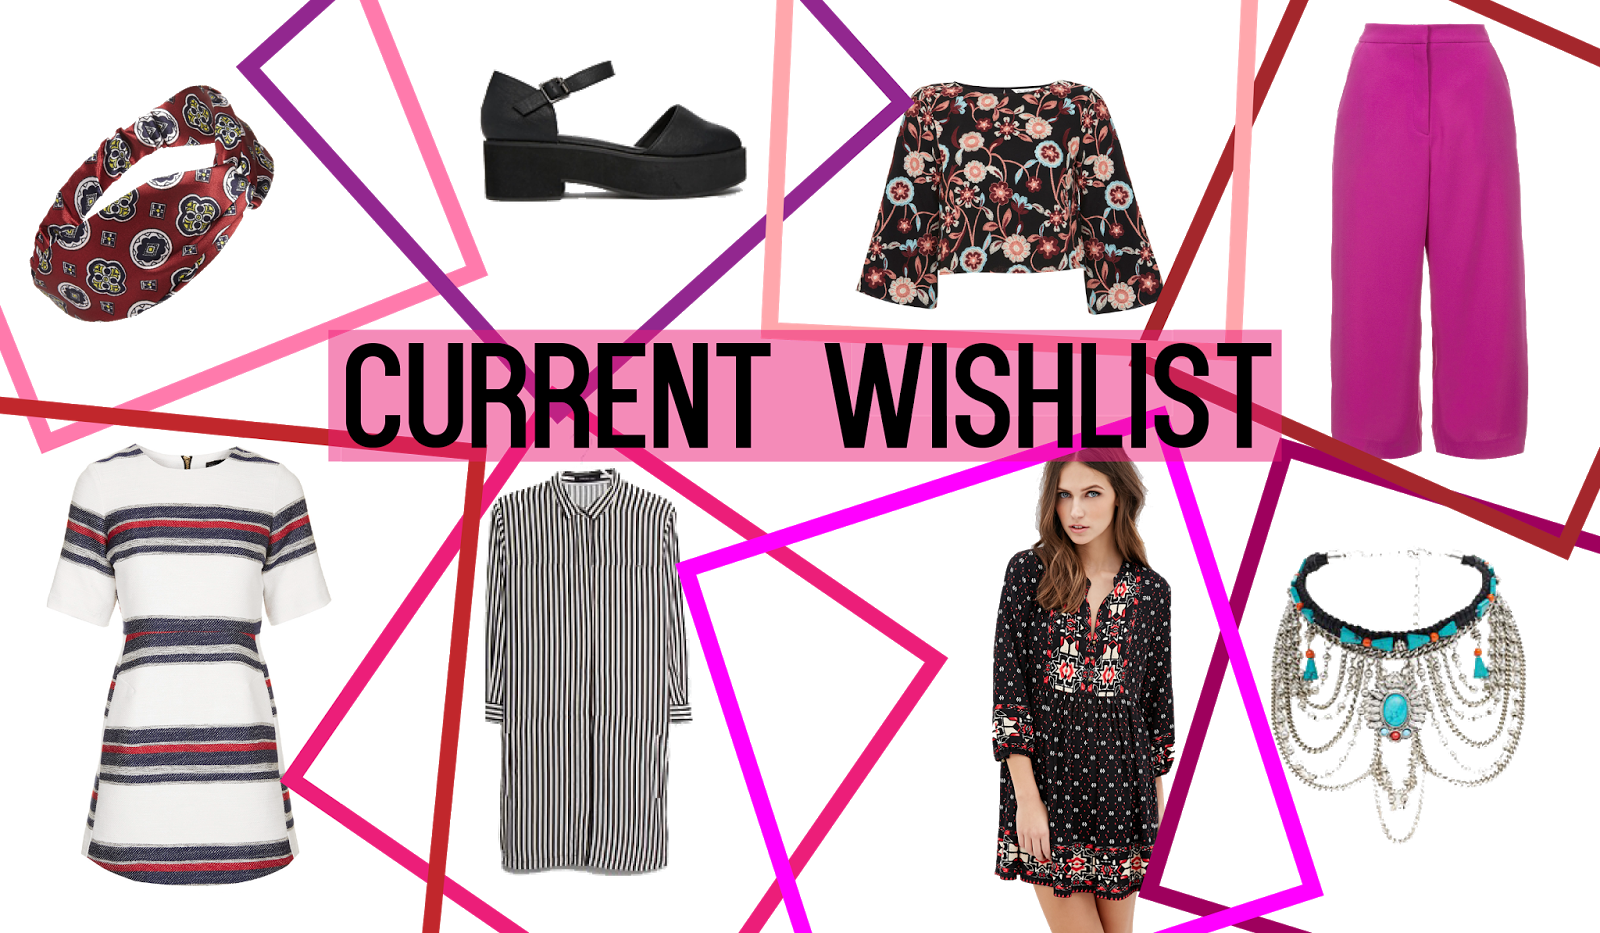 current wishlist; satin bohemian print headband, black faux leather closed toe flatforms, embroidered floral top with bell sleeves, pink wide leg cropped trousers, draped turquoise stone silver choker, bohemian print folk dress, black and white striped shirt dress and white, red and navy striped skater dress